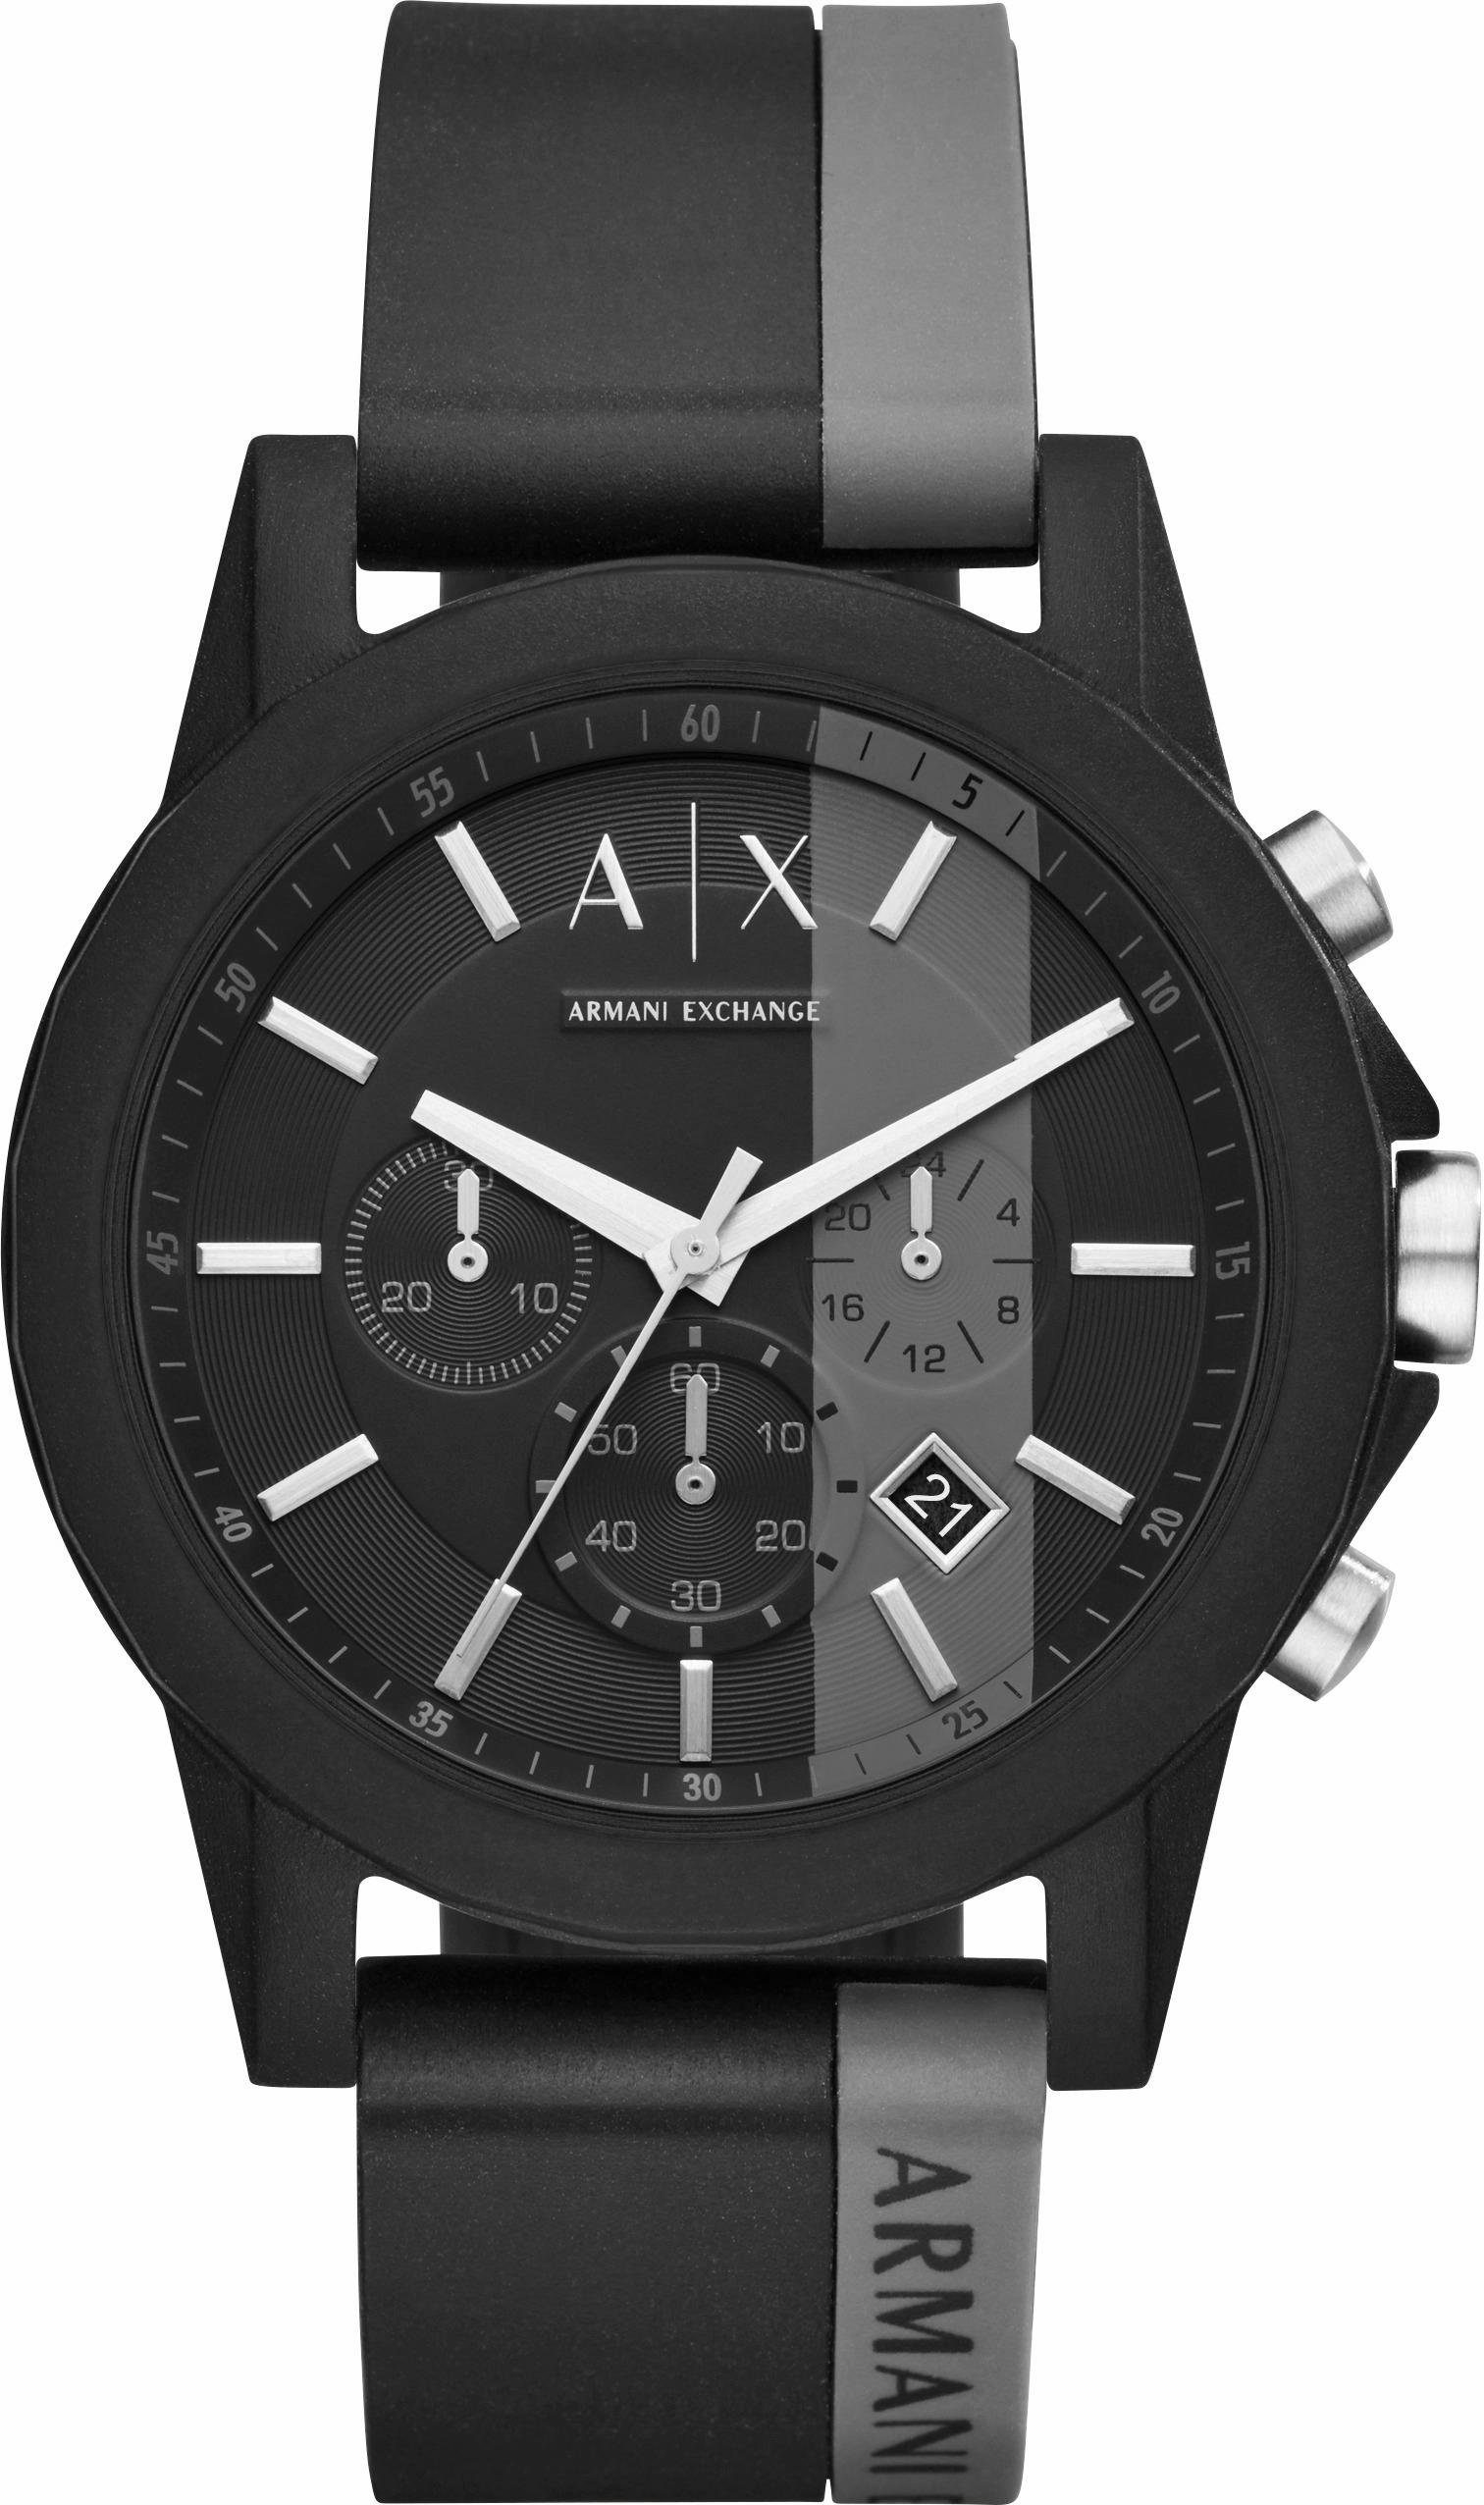 ARMANI EXCHANGE Chronograph »AX1331«